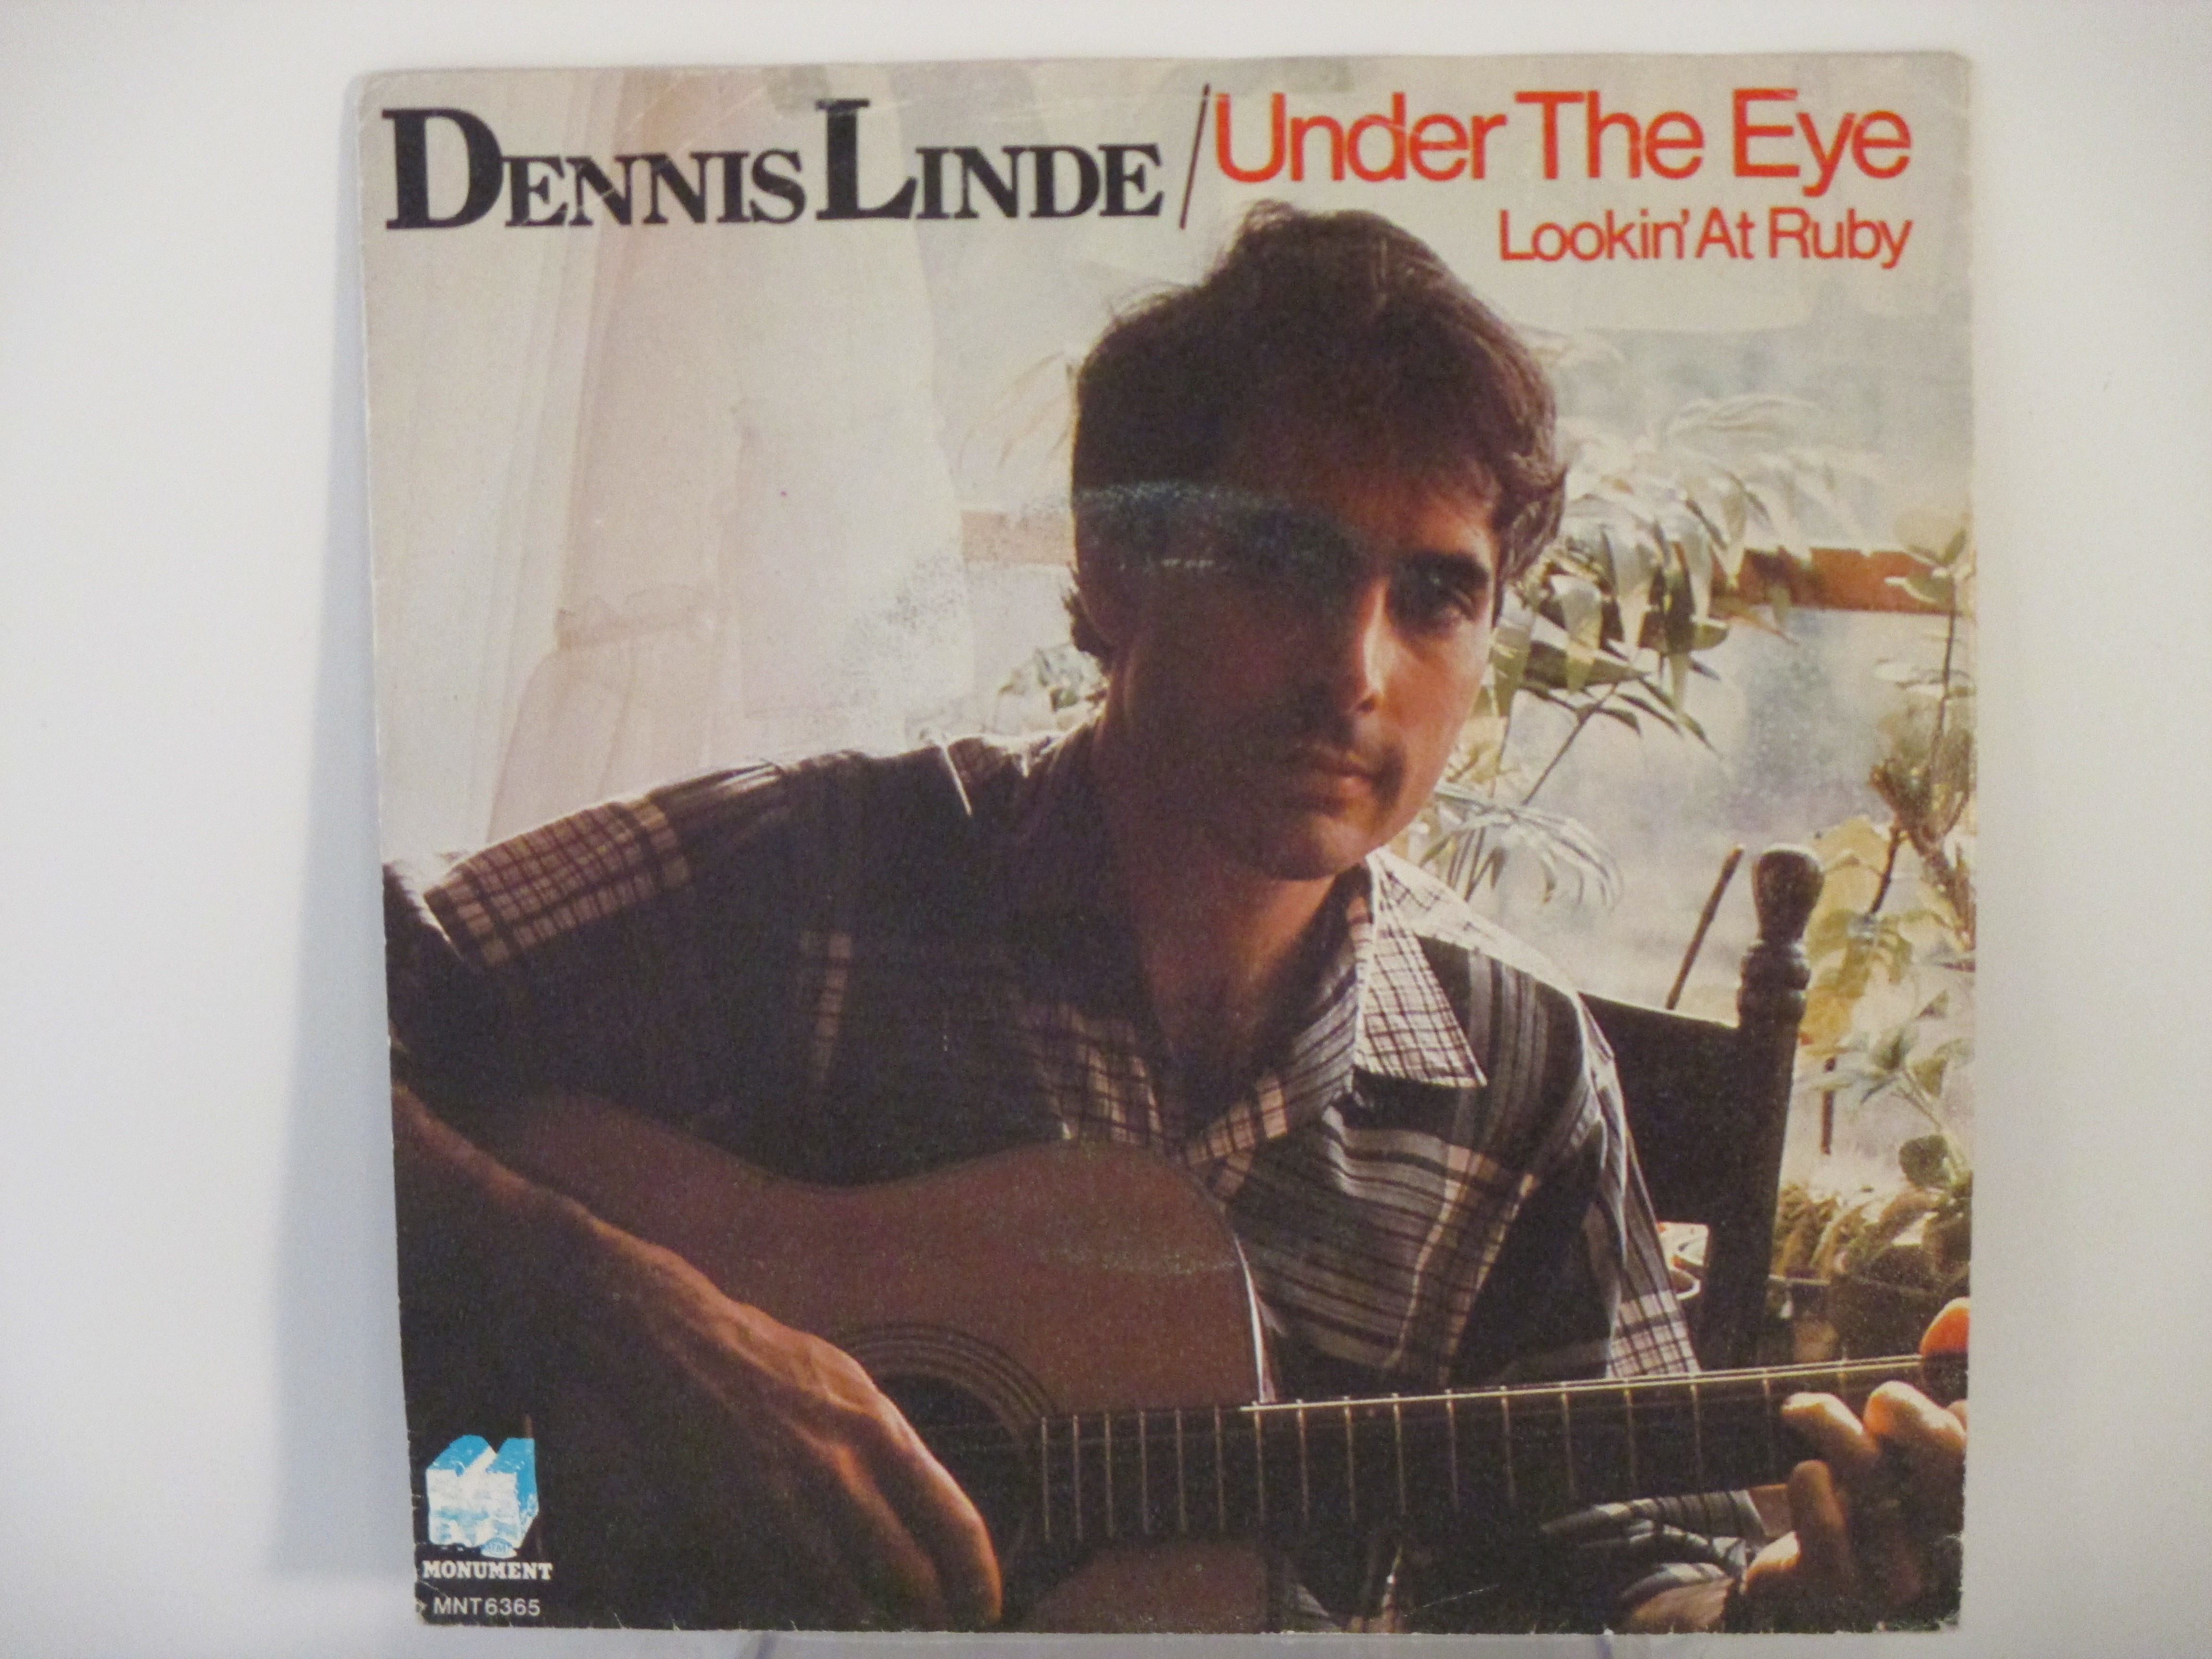 DENNIS LINDE : Under the eye / Lookin' at Ruby